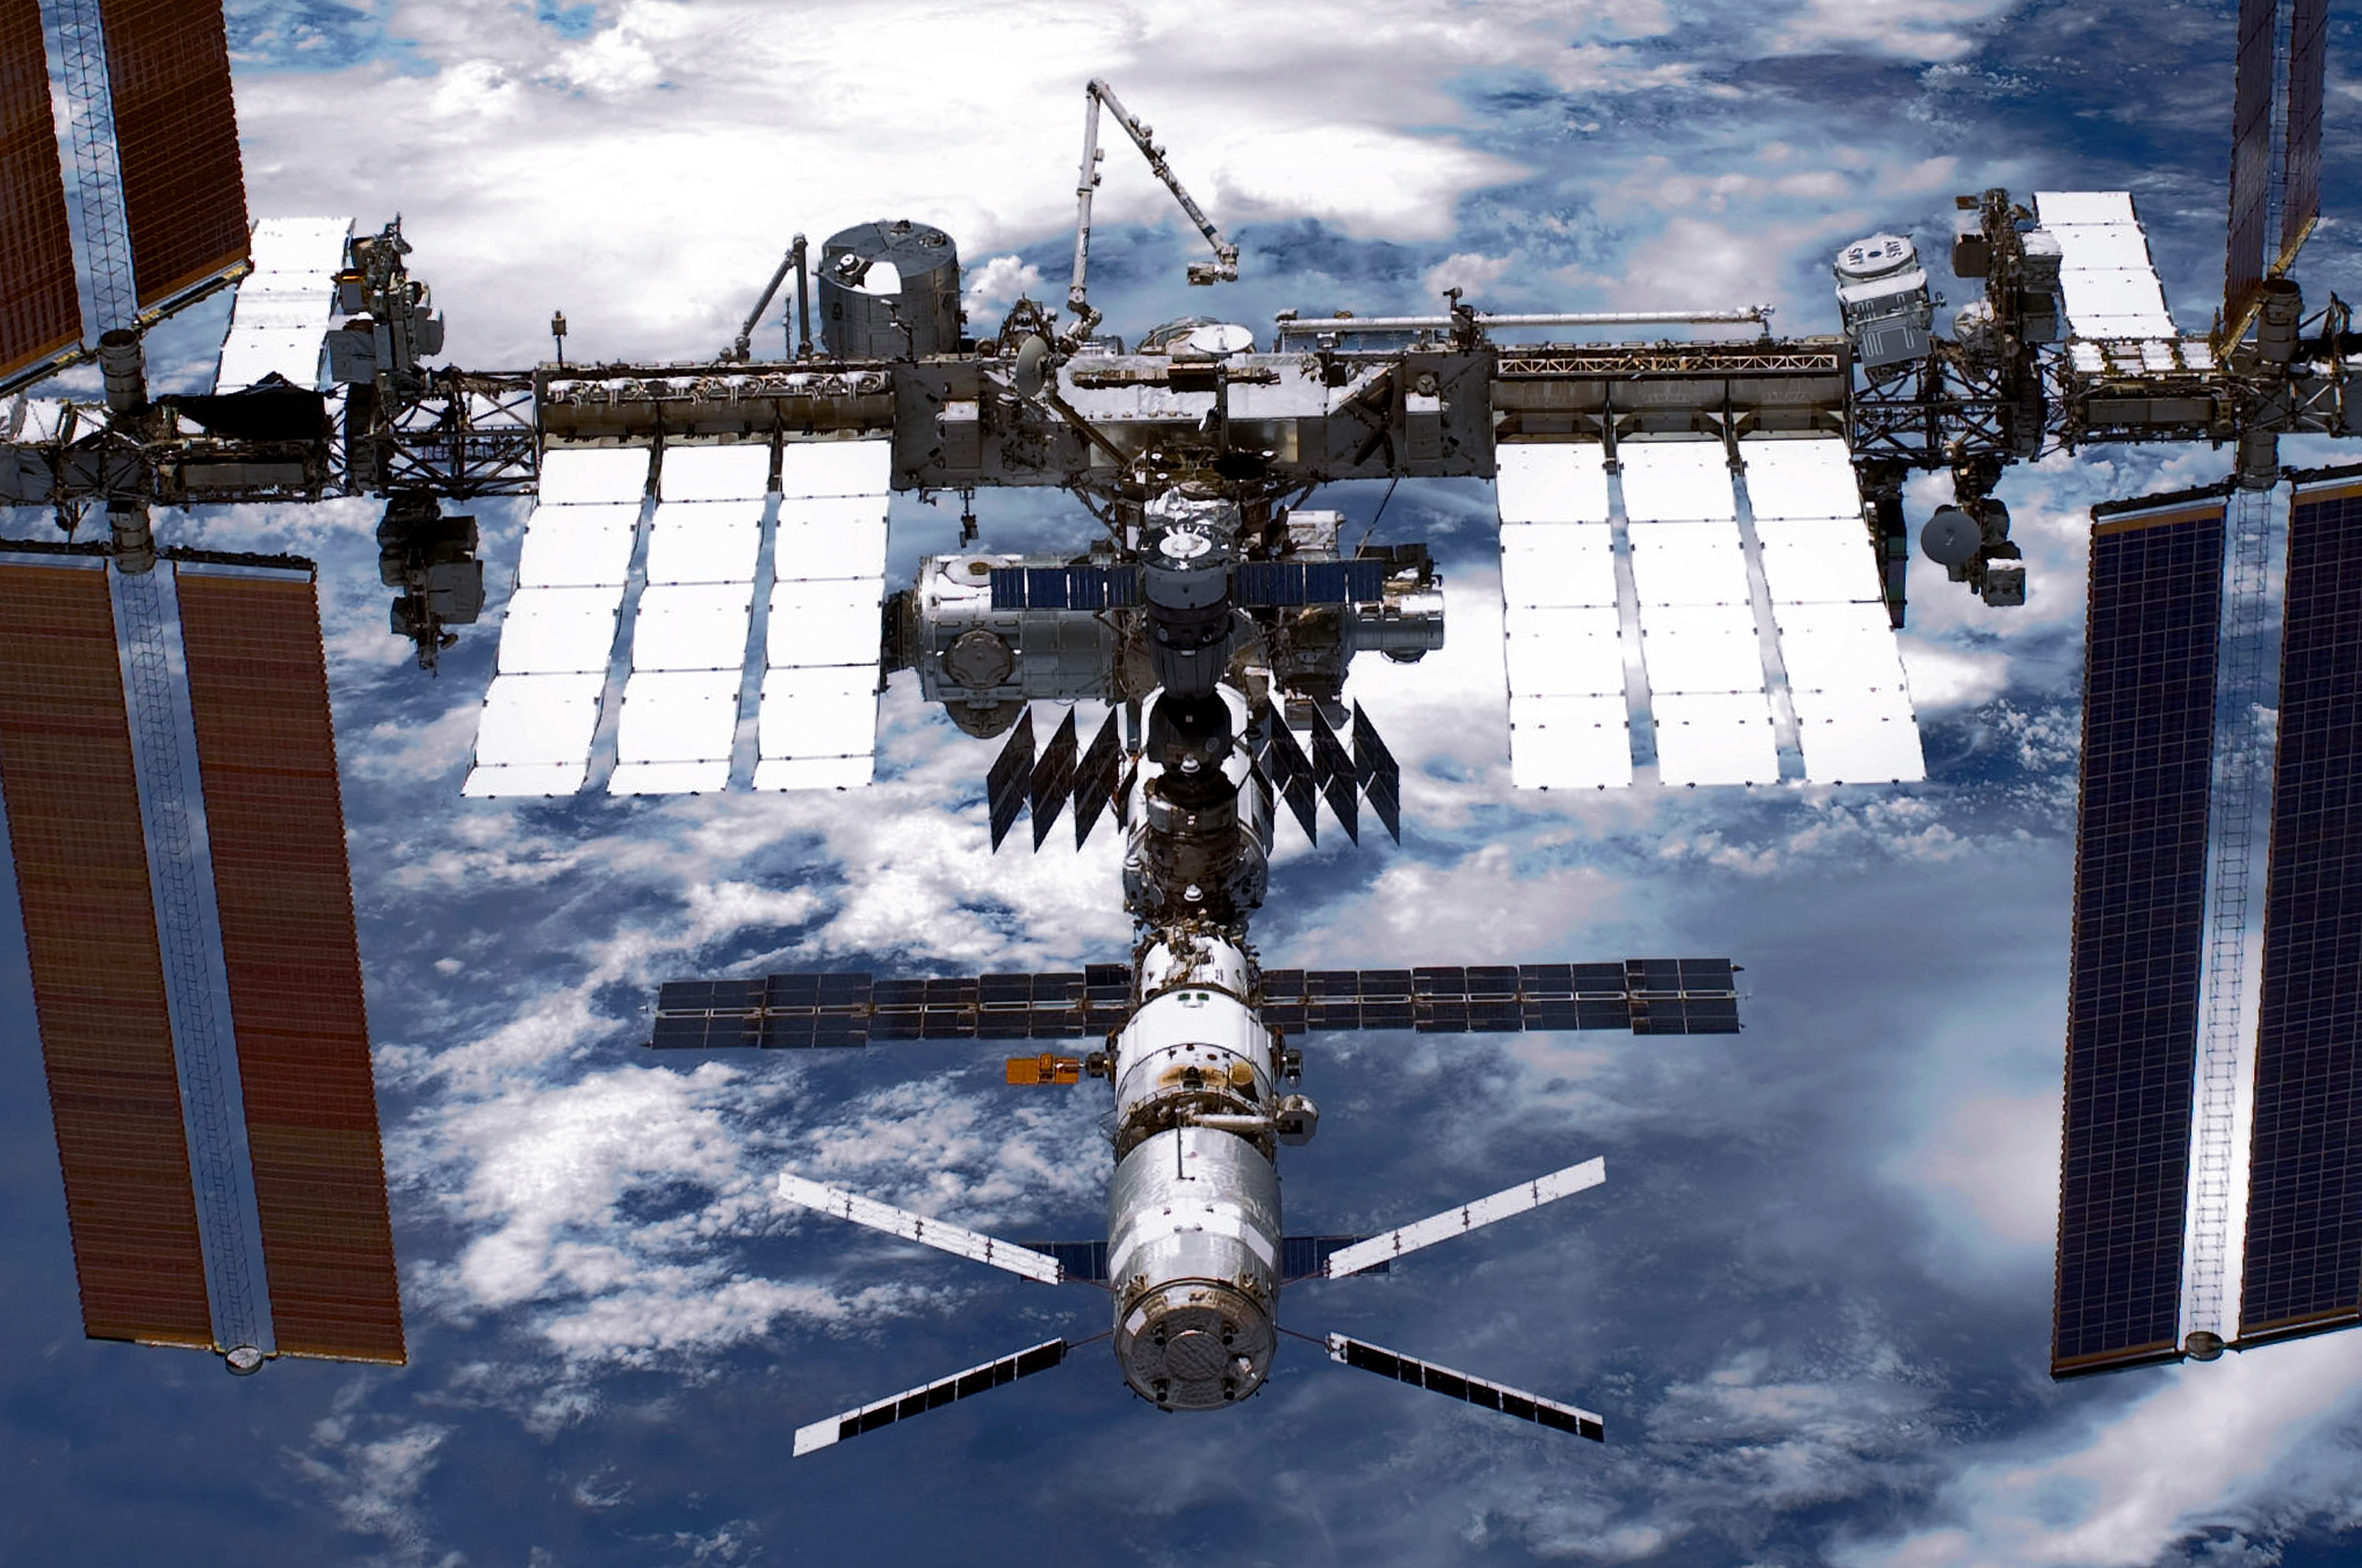 In this handout provided by National Aeronautics and Space Administration (NASA), back dropped by planet Earth the International Space Station (ISS) is seen from NASA space shuttle Endeavour after the station and shuttle began their post-undocking relative separation May 29, 2011 in space.